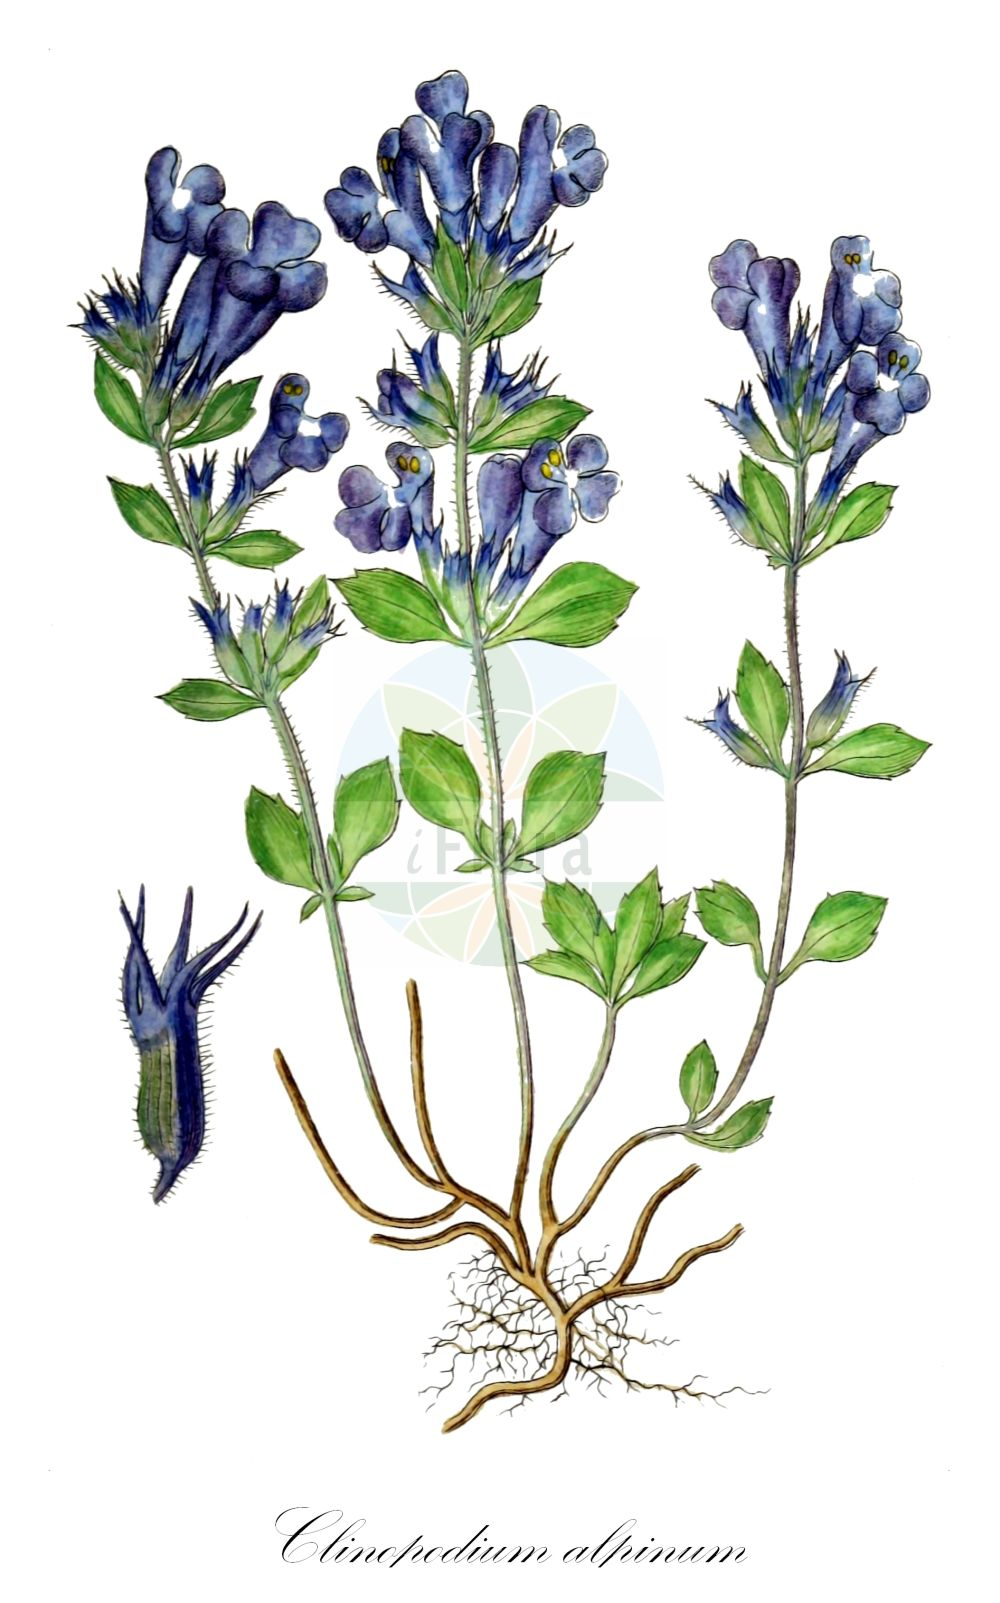 Historische Abbildung von Clinopodium alpinum (Alpen-Steinquendel - Alpine Calamint). Das Bild zeigt Blatt, Bluete, Frucht und Same. ---- Historical Drawing of Clinopodium alpinum (Alpen-Steinquendel - Alpine Calamint).The image is showing leaf, flower, fruit and seed.(Clinopodium alpinum,Alpen-Steinquendel,Alpine Calamint,Faucibarba alpina,Melissa alpina,Satureja alpina,Thymus alpinus,Alpenquendel,Rock Thyme,Clinopodium,Wirbeldost,Calamint,Lamiaceae,Lippenbluetengewaechse;Lippenbluetler,Nettle family,Blatt,Bluete,Frucht,Same,leaf,flower,fruit,seed,Sturm (1796f))